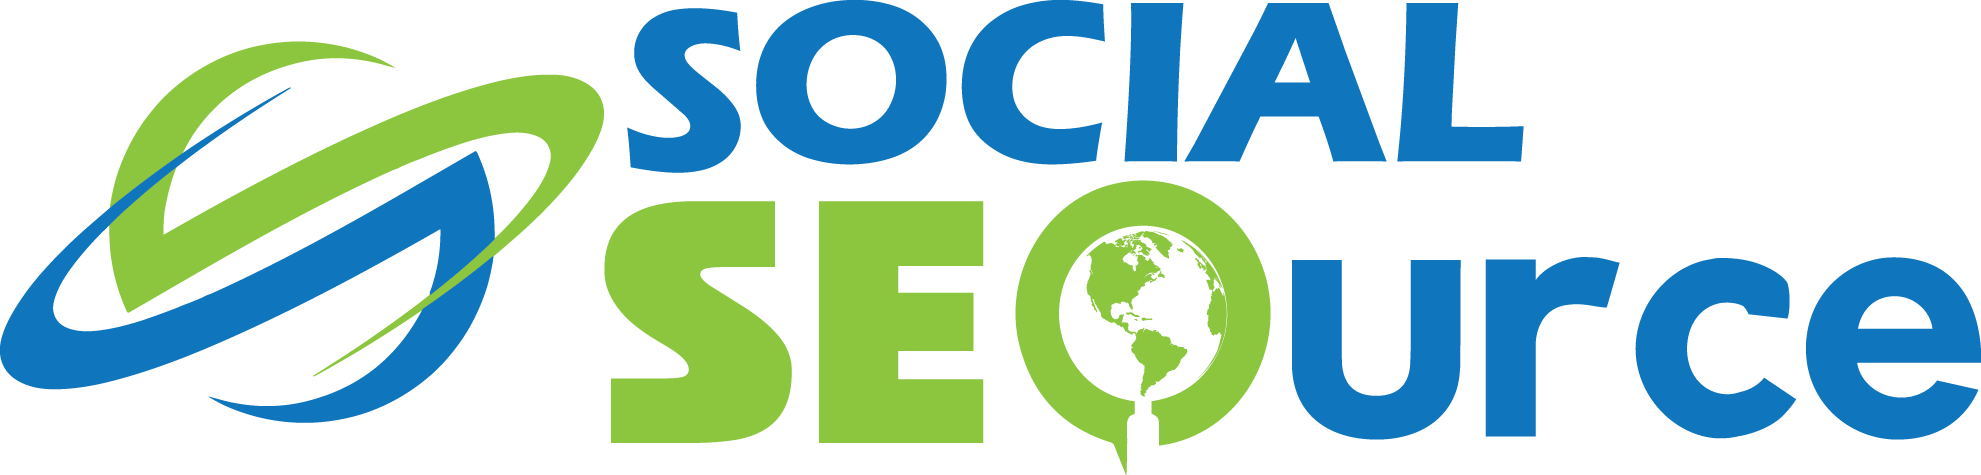 Social SEOurce - Digital Media Agency, SEO Company, Social Media Company